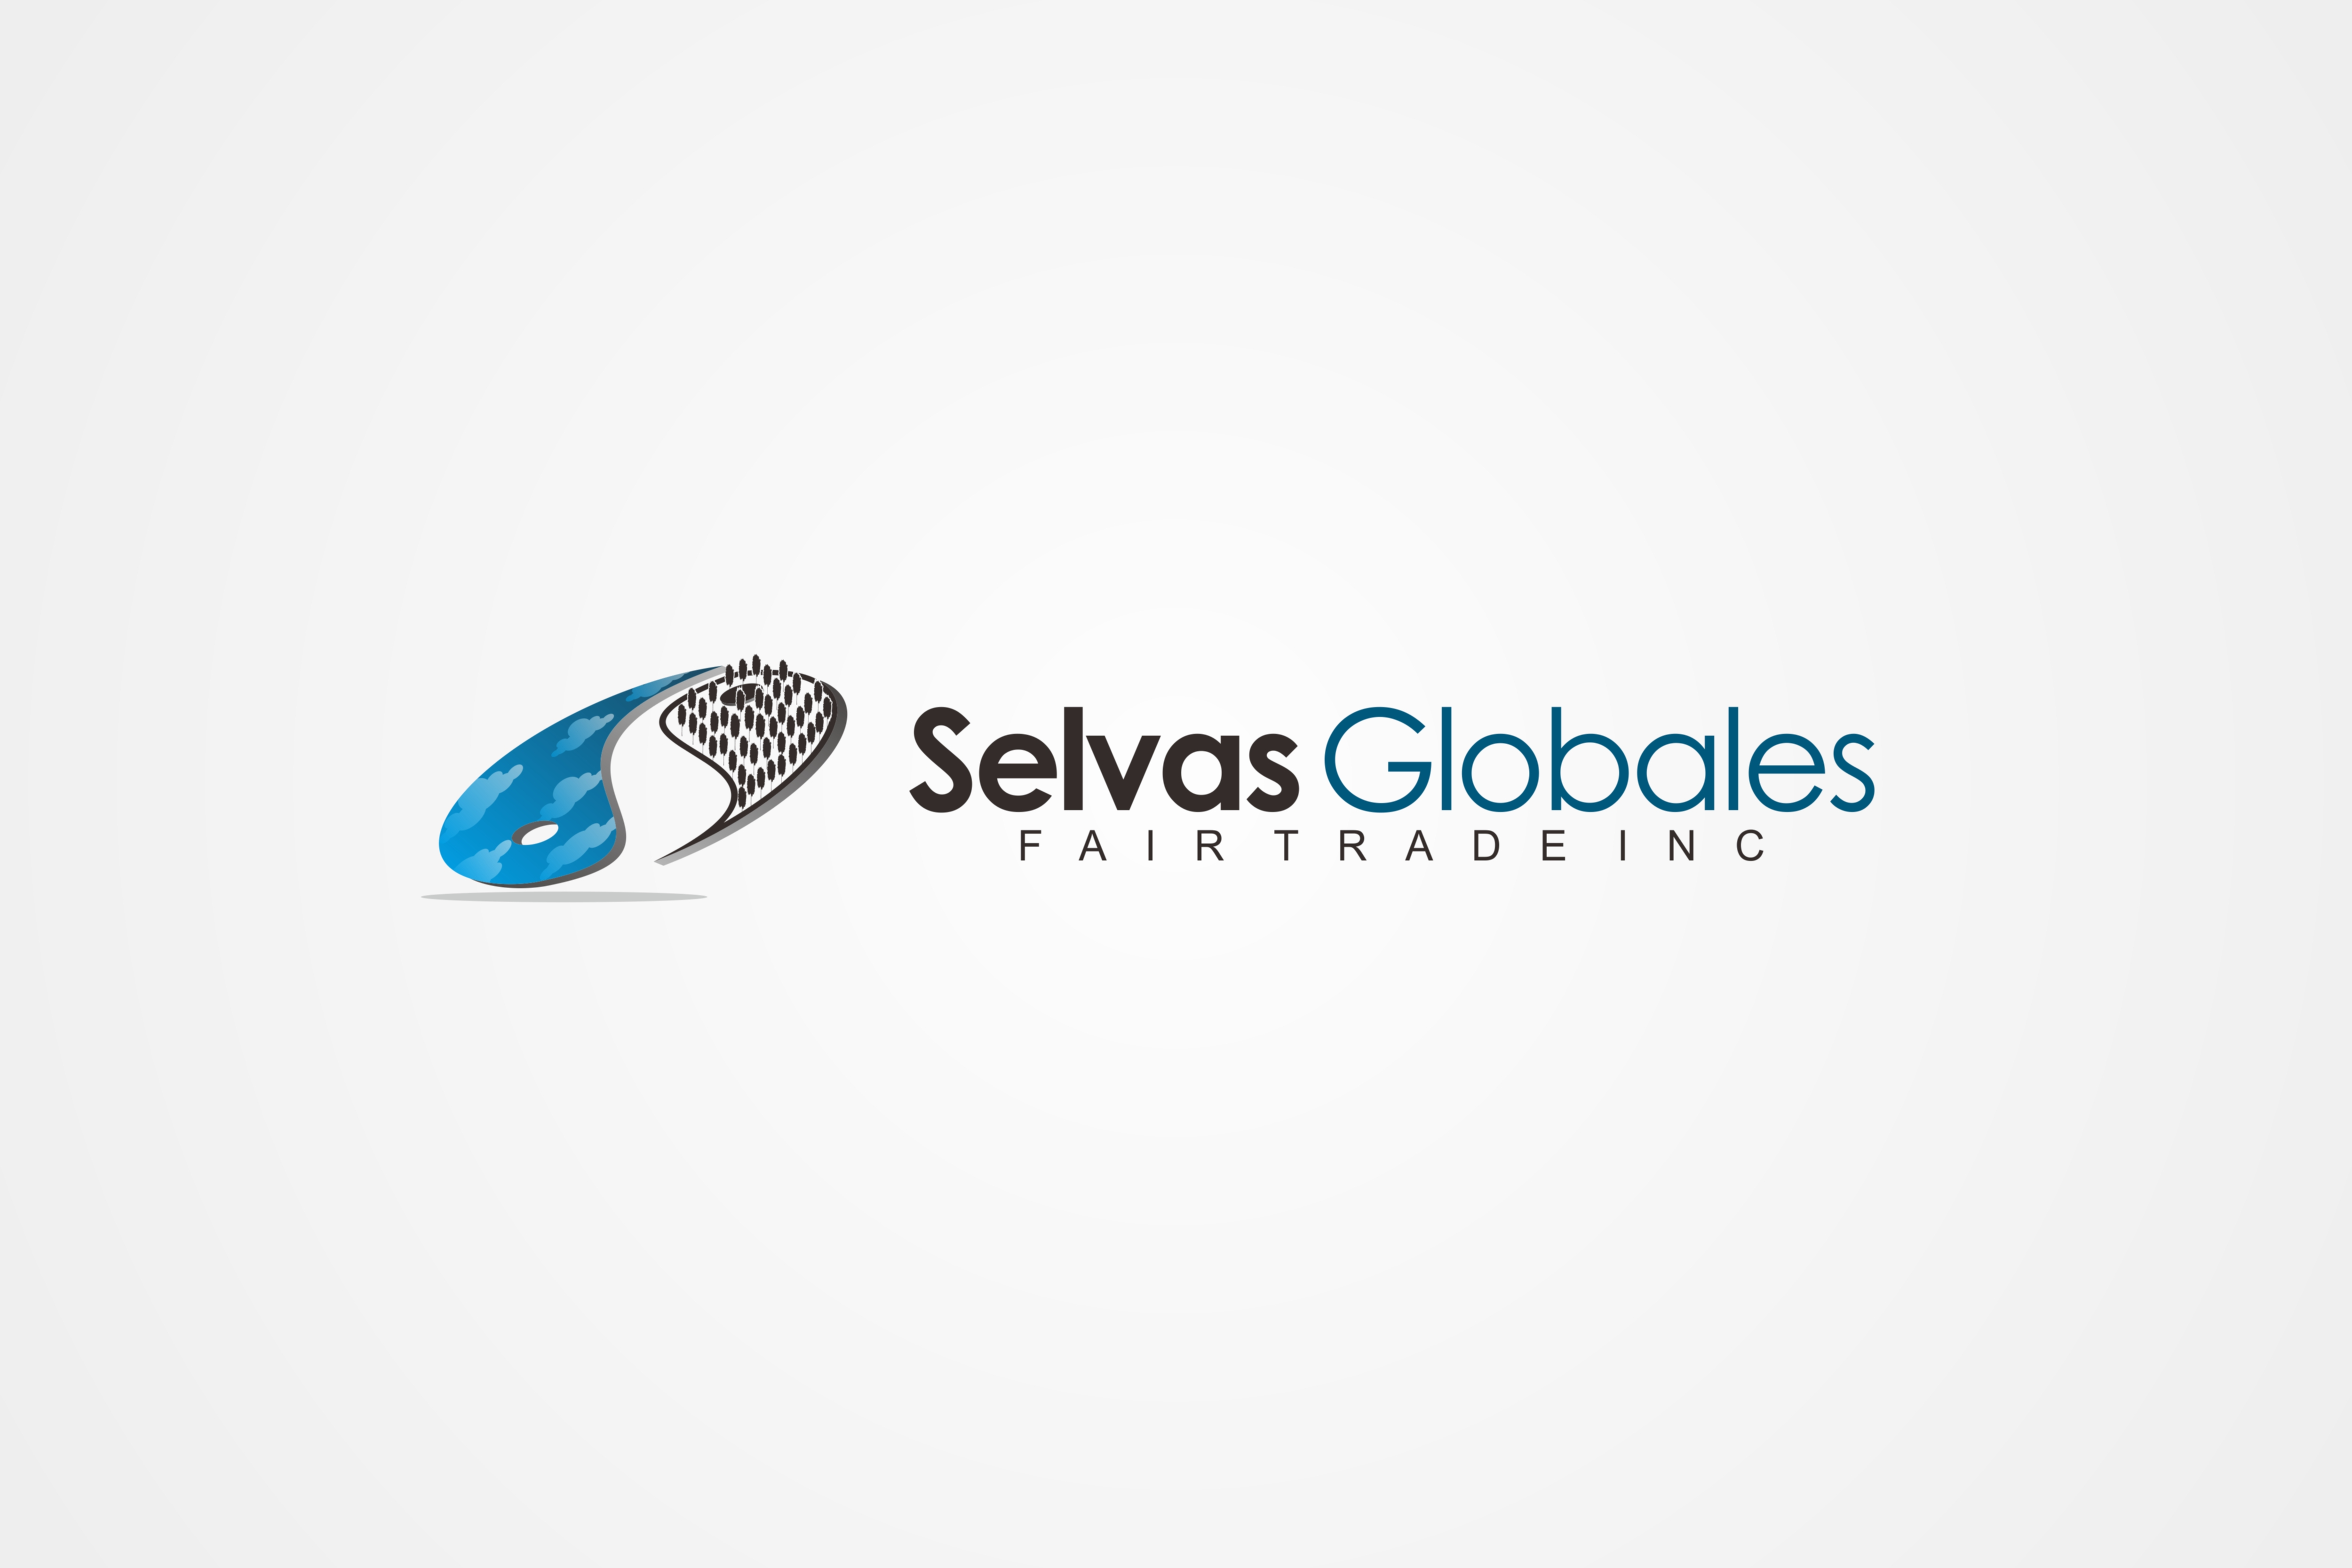 Logo Design by Private User - Entry No. 23 in the Logo Design Contest Captivating Logo Design for Selvas Globales Fair Trade Inc..